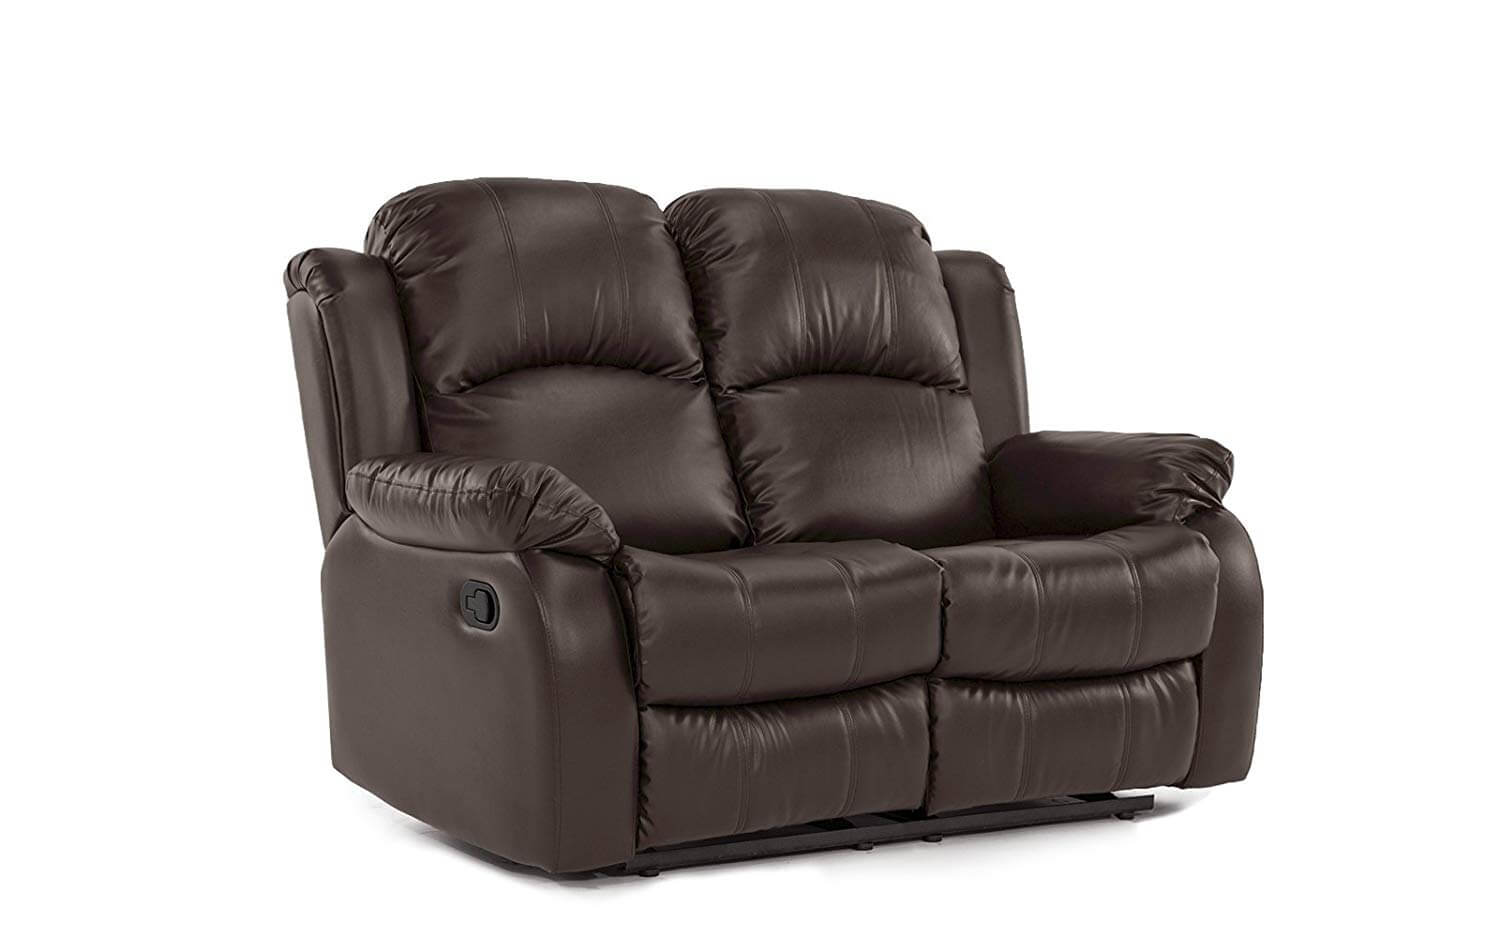 Best Leather Recliner Sofa Reviews